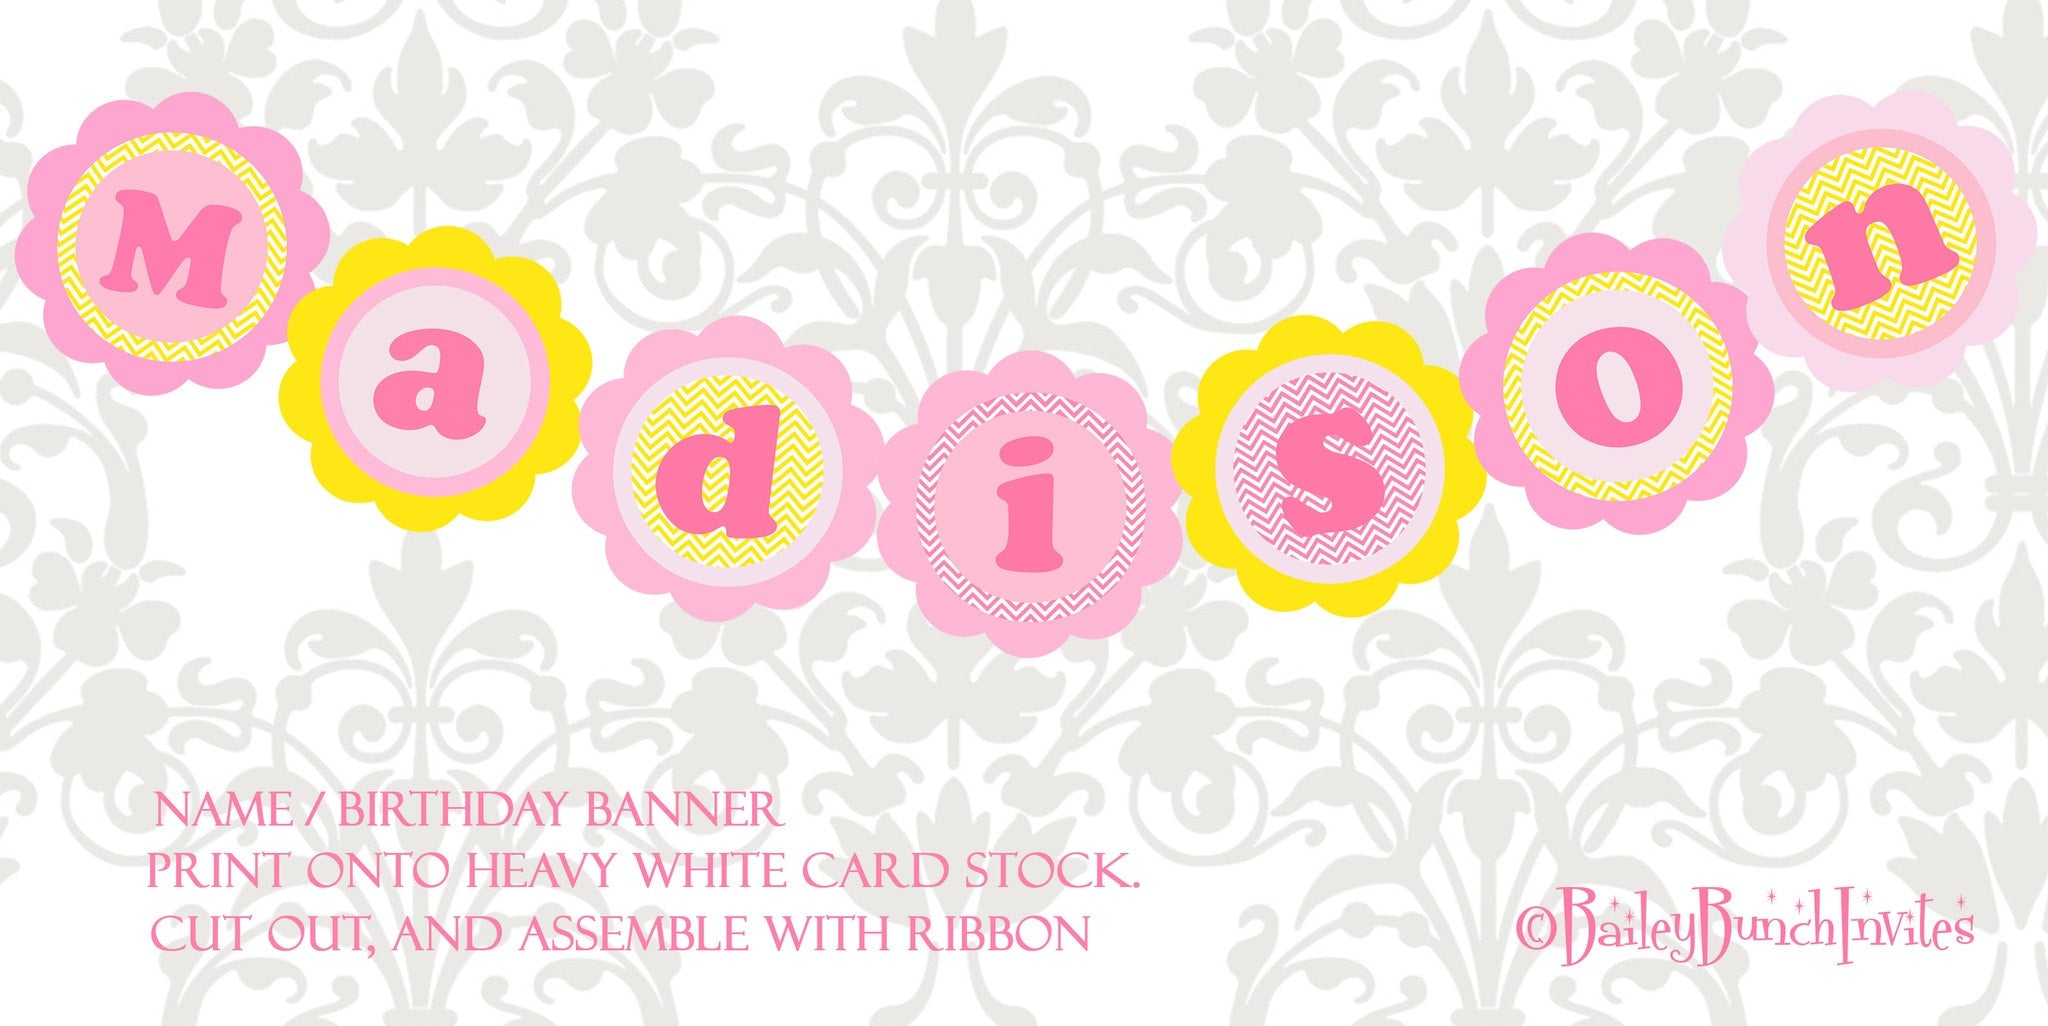 you are my sunshine xl birthday name banner pink yellow